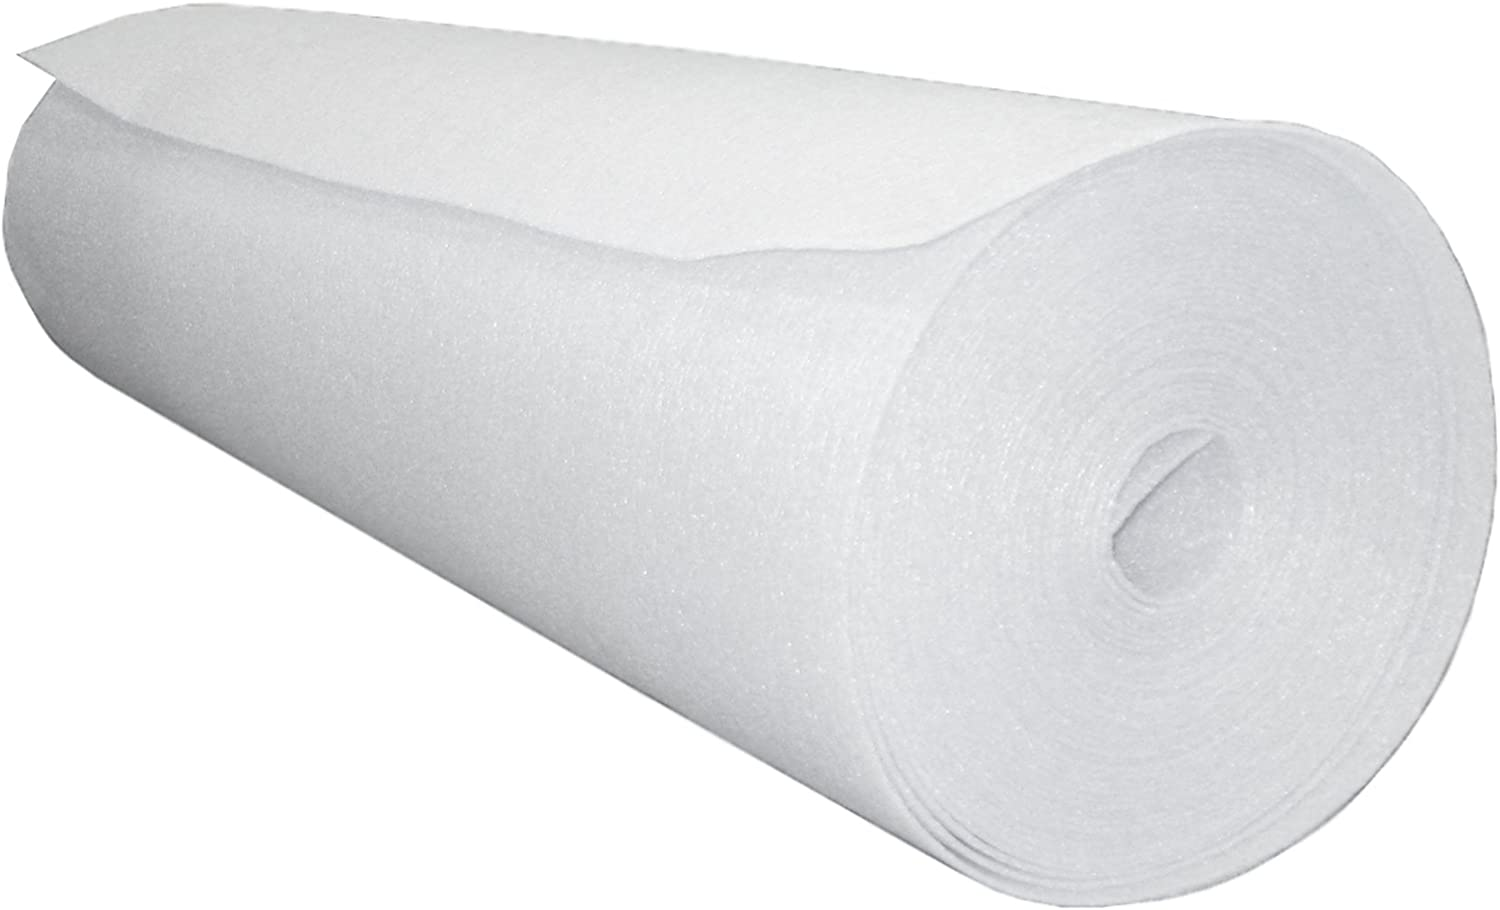 Gladon 100-Feet Roll Above Ground Pool Wall New sales Super popular specialty store 1 - Foam in. x 48 8